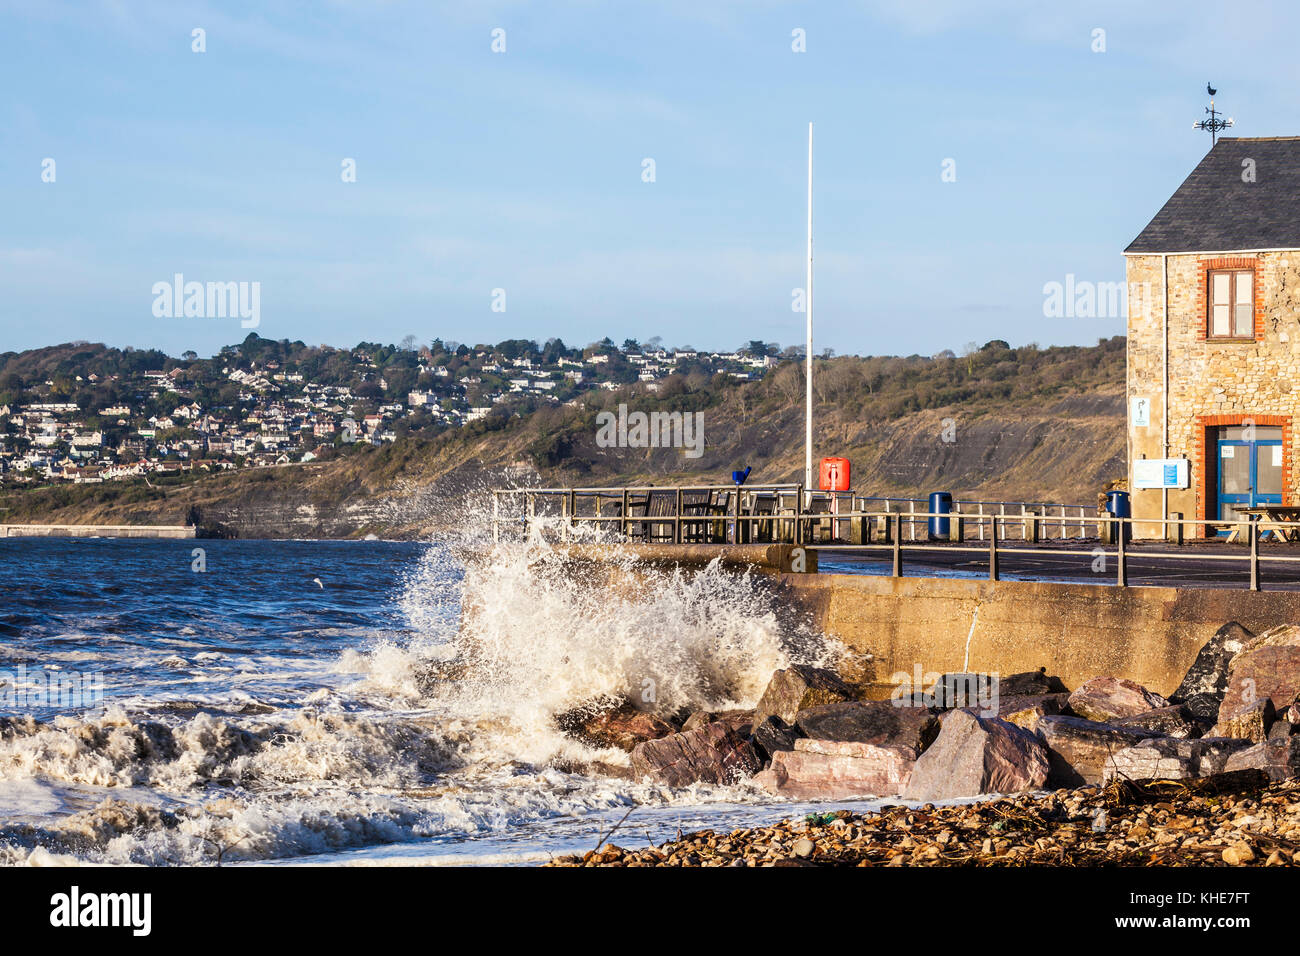 Waves breaking against the quay at Charmouth in Dorset. - Stock Image